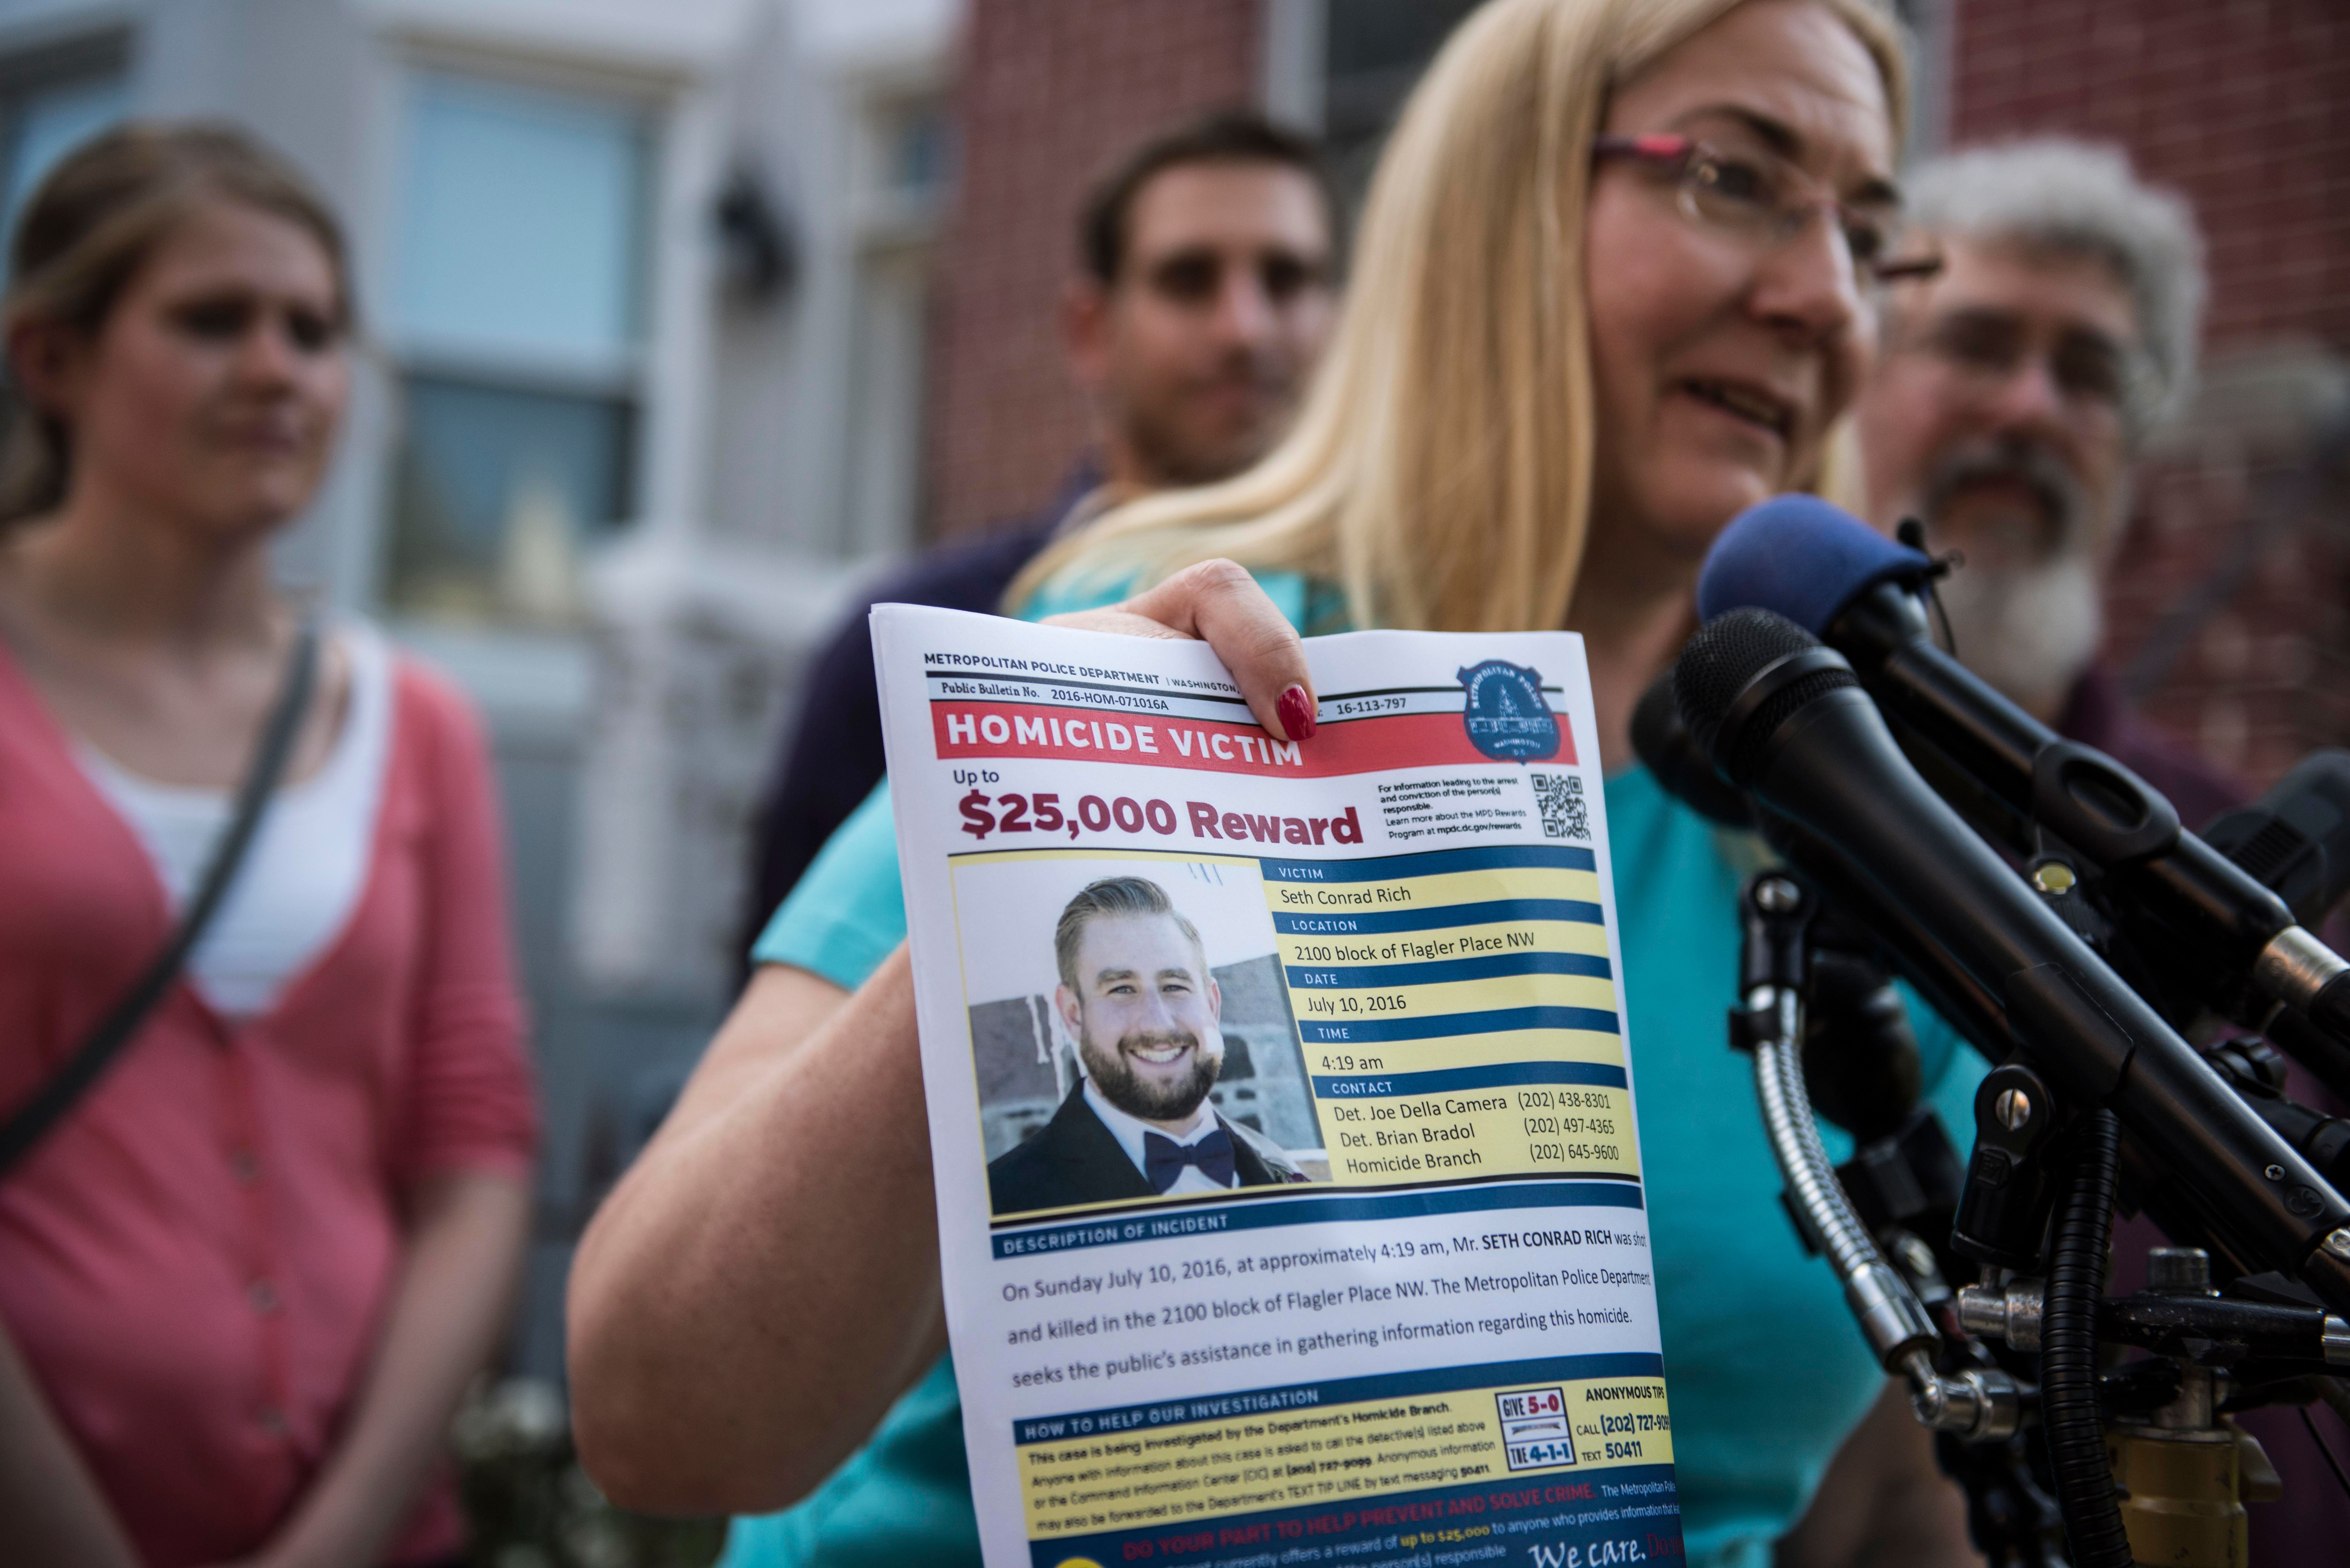 WASHINGTON, DC - AUGUST 4: Mary Rich, the mother of slain DNC staffer Seth Rich, gives a press conference in Bloomingdale on August 1, 2016. Seth Rich was gunned down in the DC neighborhood a month ago and the Rich's were imploring people for any information they may have about his killer. (Photo by Michael Robinson Chavez/The Washington Post via Getty Images)